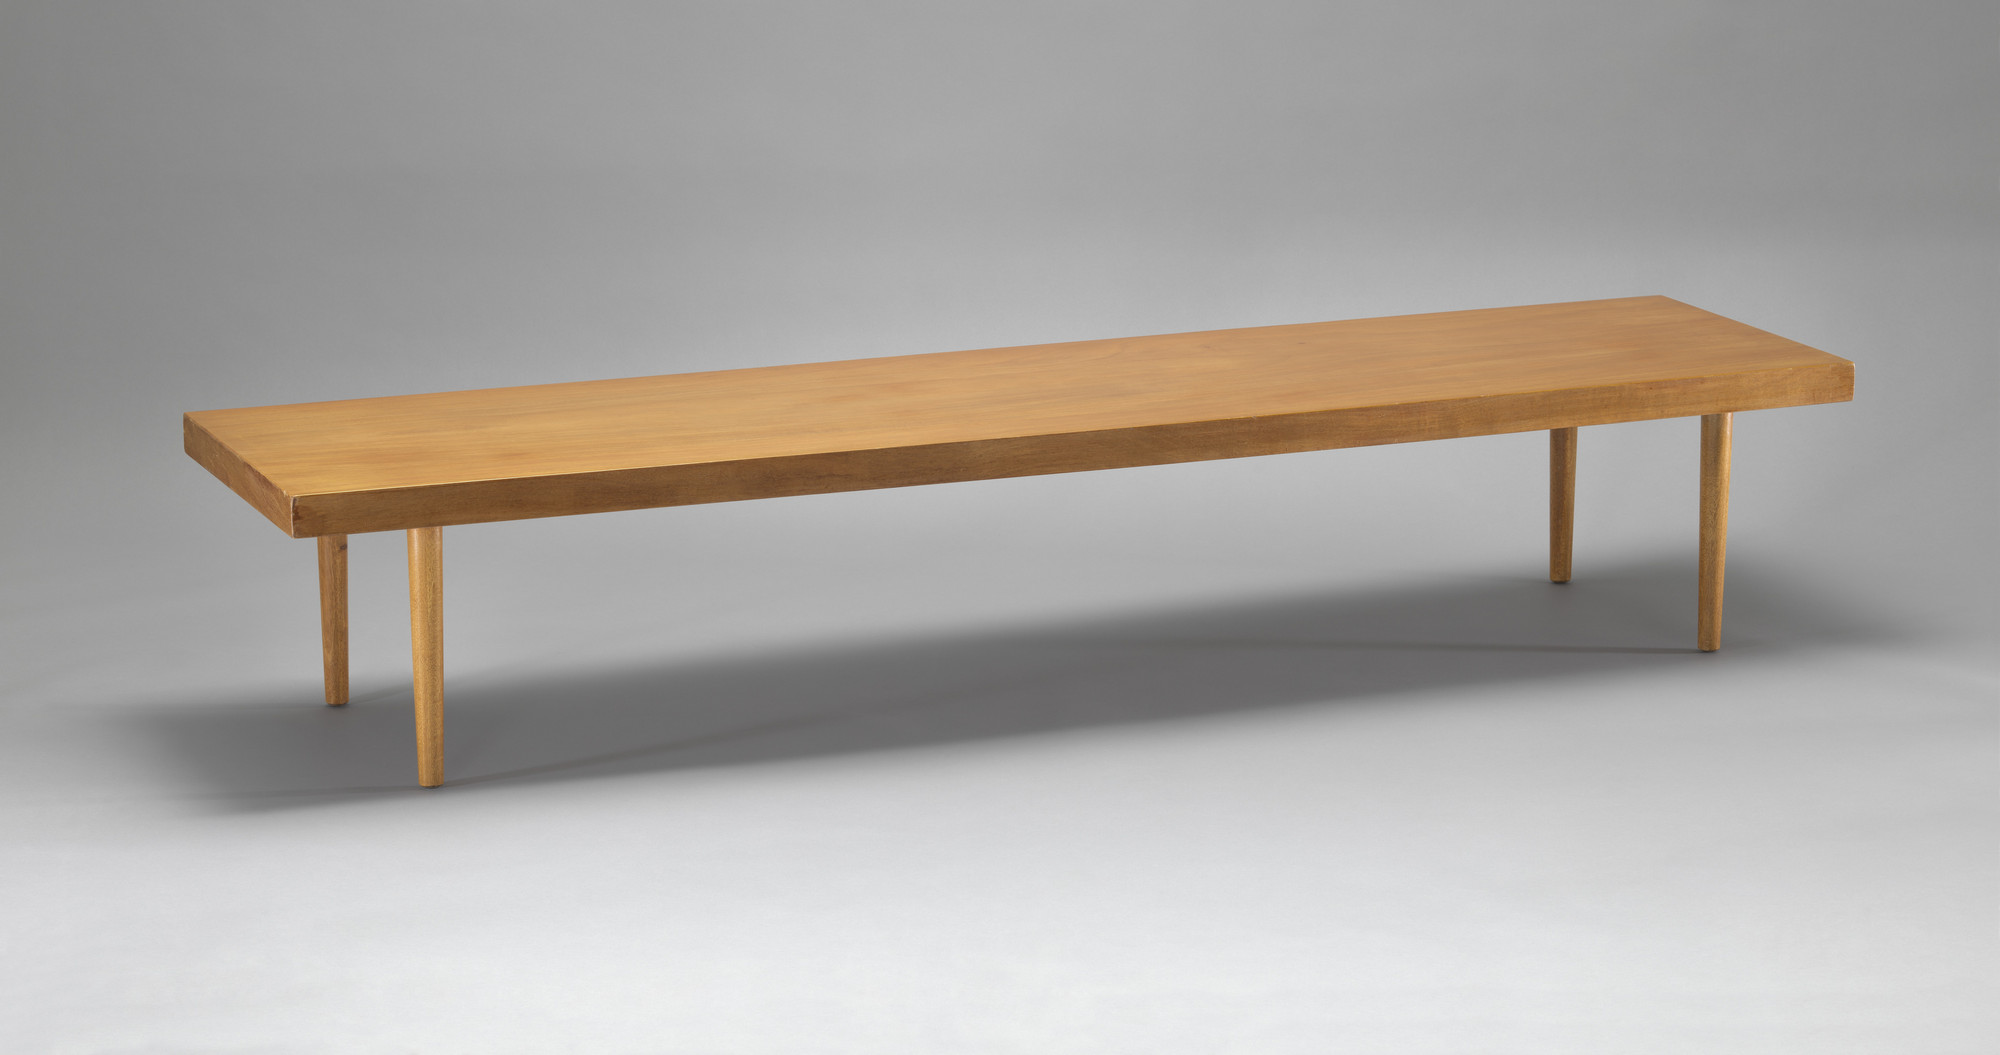 Charles Eames, Eero Saarinen. Bench/Base for Storage Units. 1940